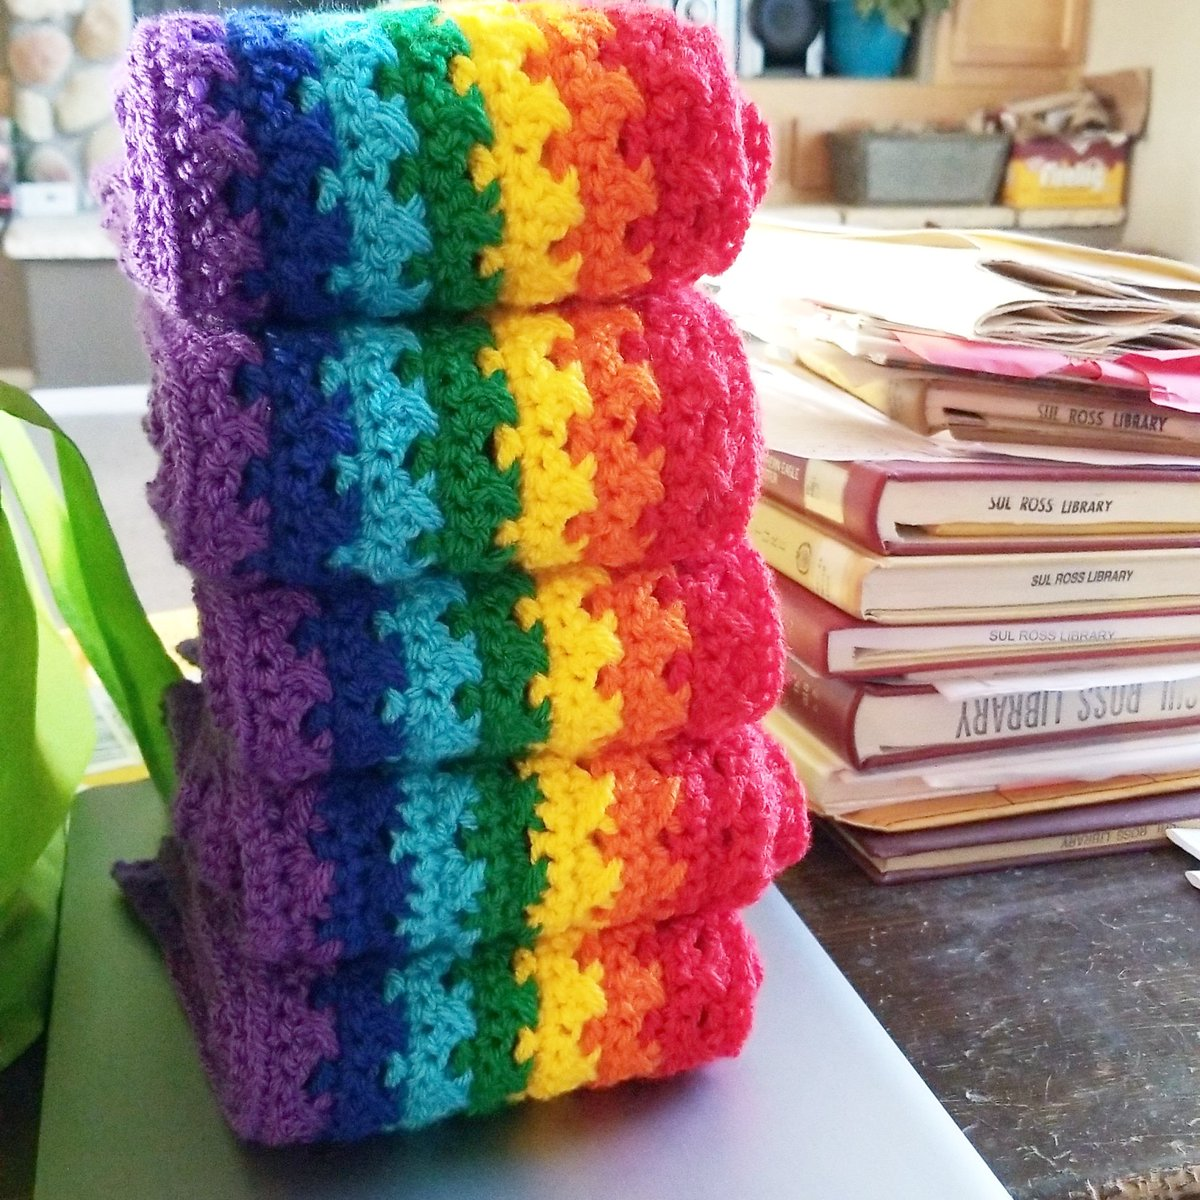 There is something satisfactory about a pile of rainbow scarves being taller than a pile of books. I'll have at least one more scarf finished before bed. 🌈  #rainbowscarf  #rainbowlove  #rainbow🌈 #paintboxyarns  #paintbox  #loveknittingcom  #crochetscarf #day145of365